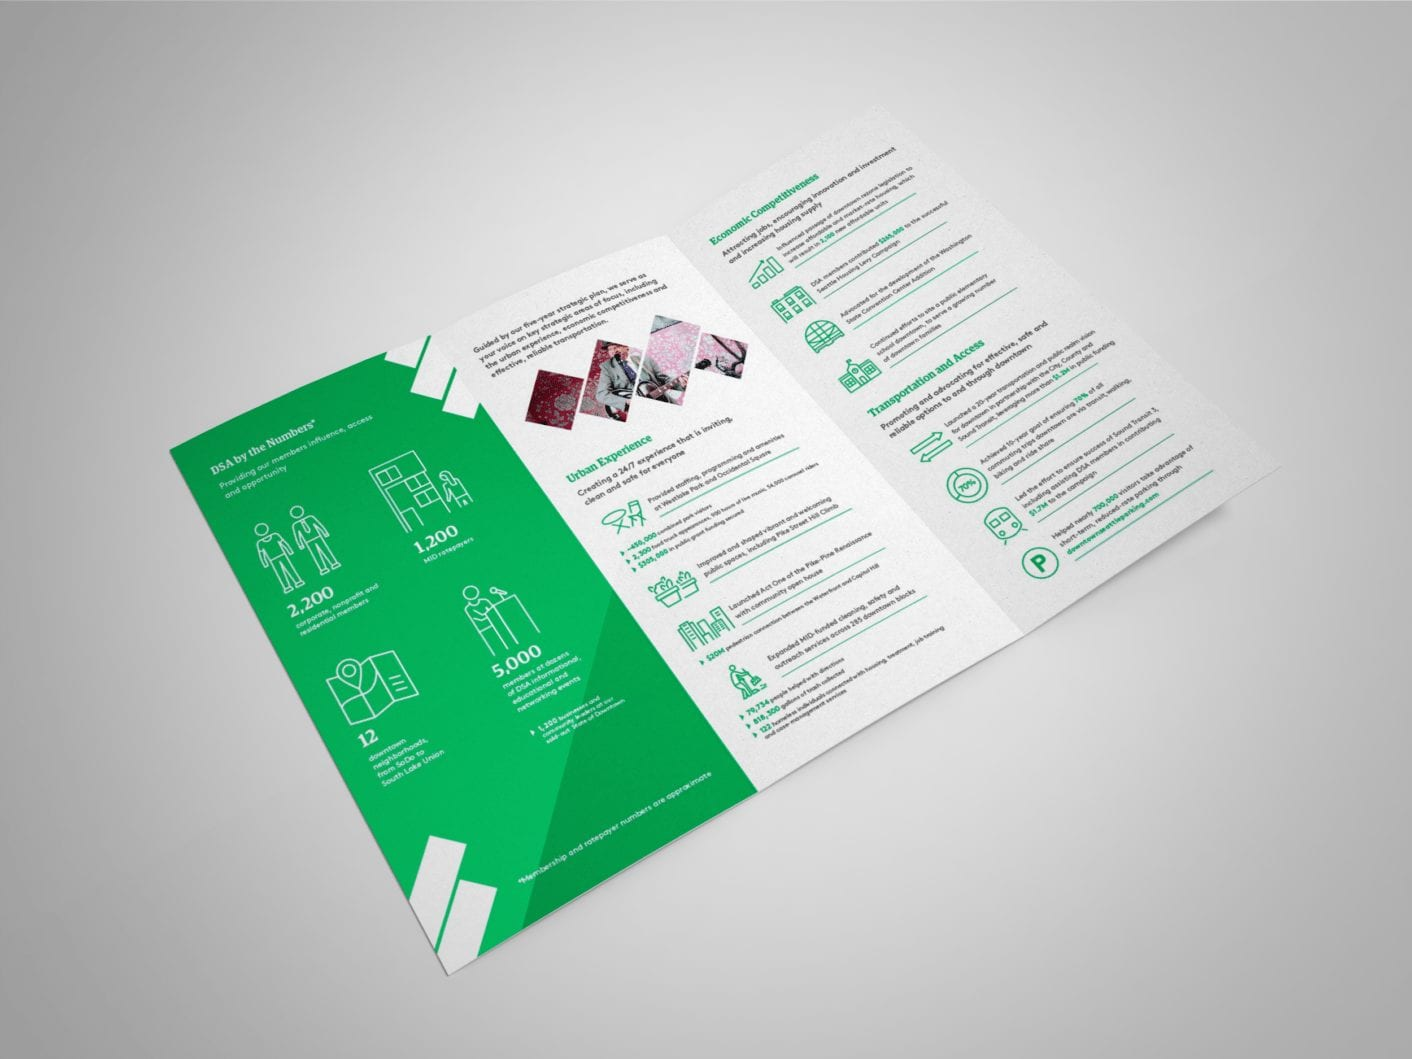 Green and white branded brochure with illustrations